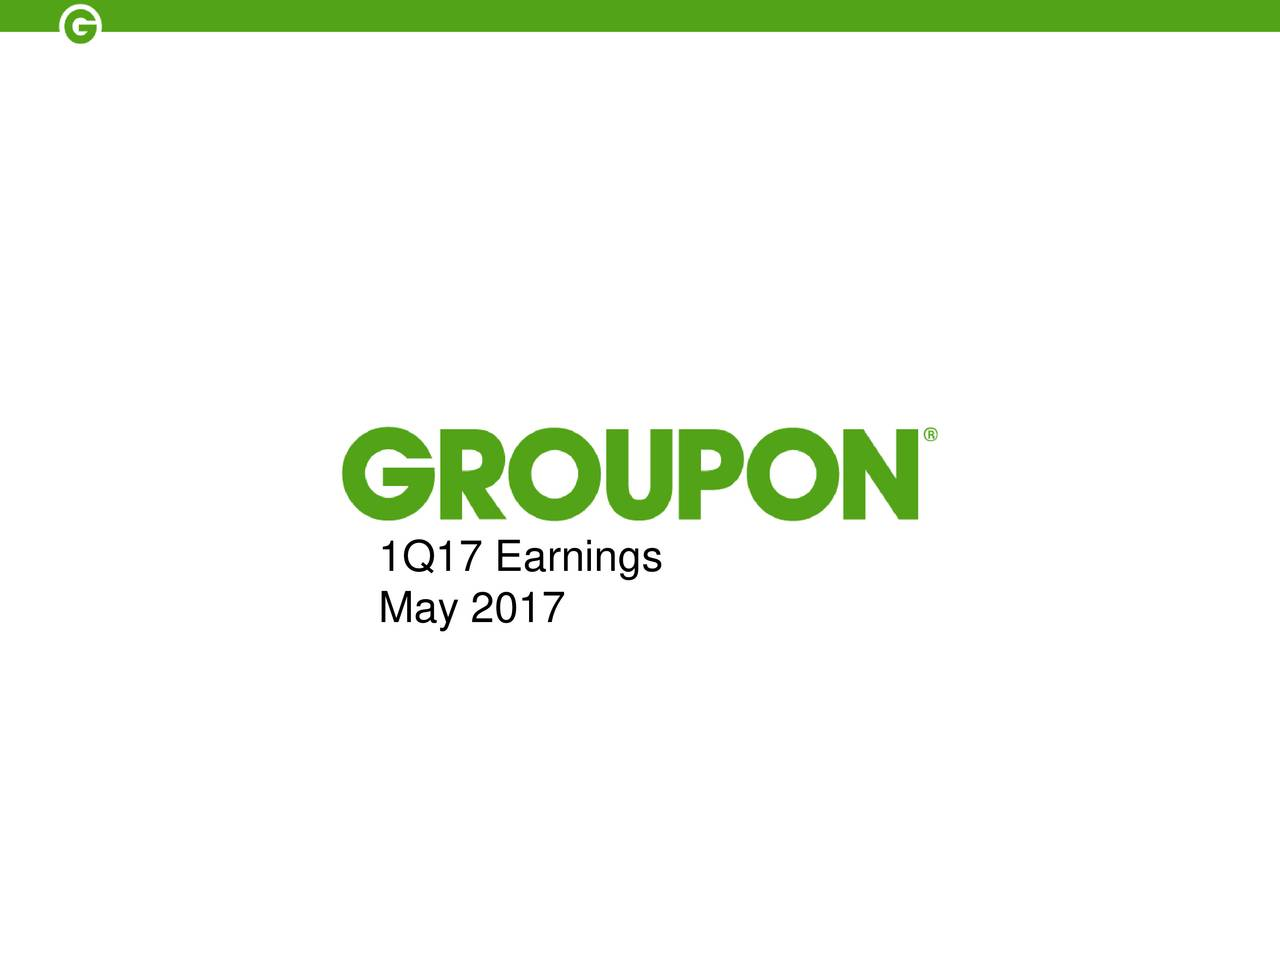 Groupon inc 2017 q1 results earnings call slides groupon may 2017 buycottarizona Image collections